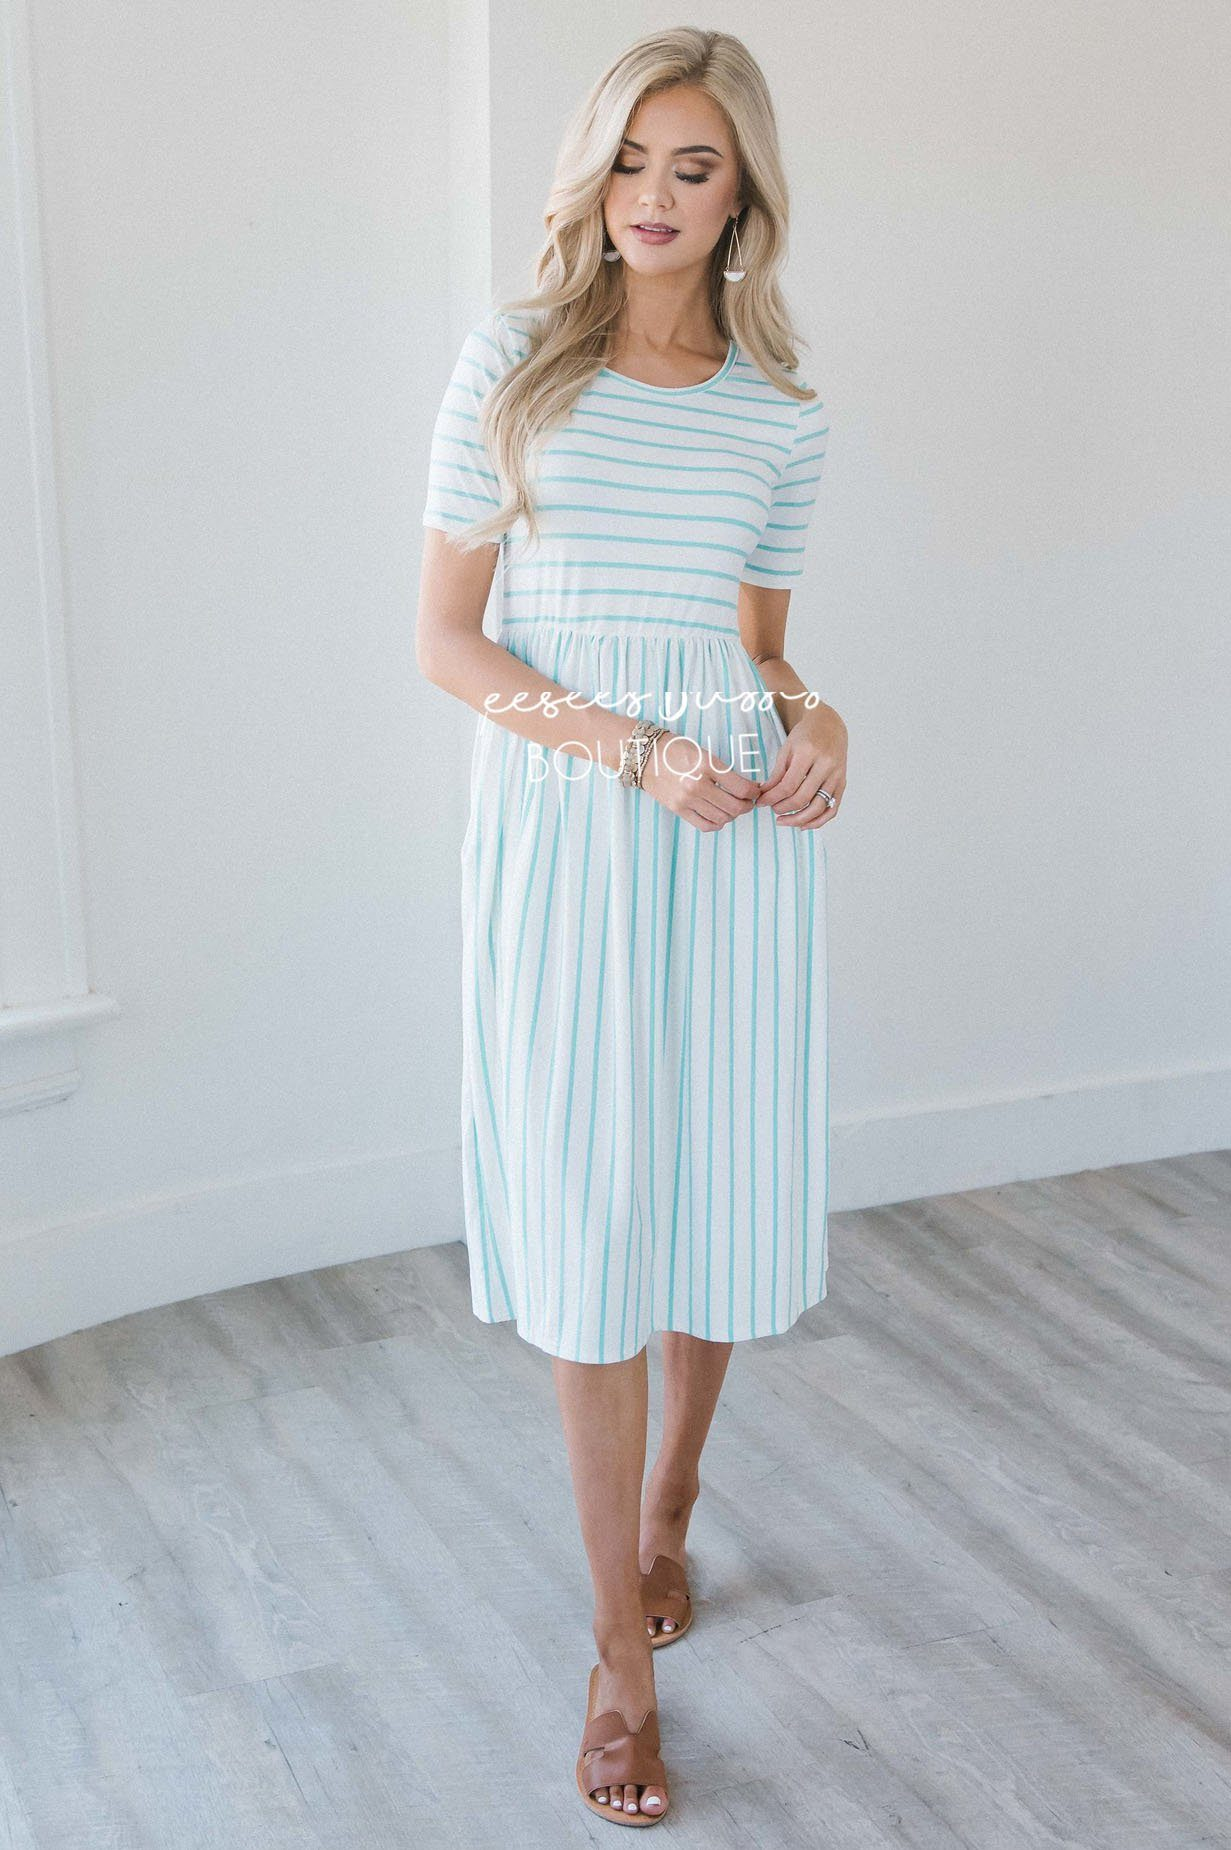 fda1822f605a5 Ivory Mint Stripe Pocket Modest Dress for Church| Best Place To Buy ...